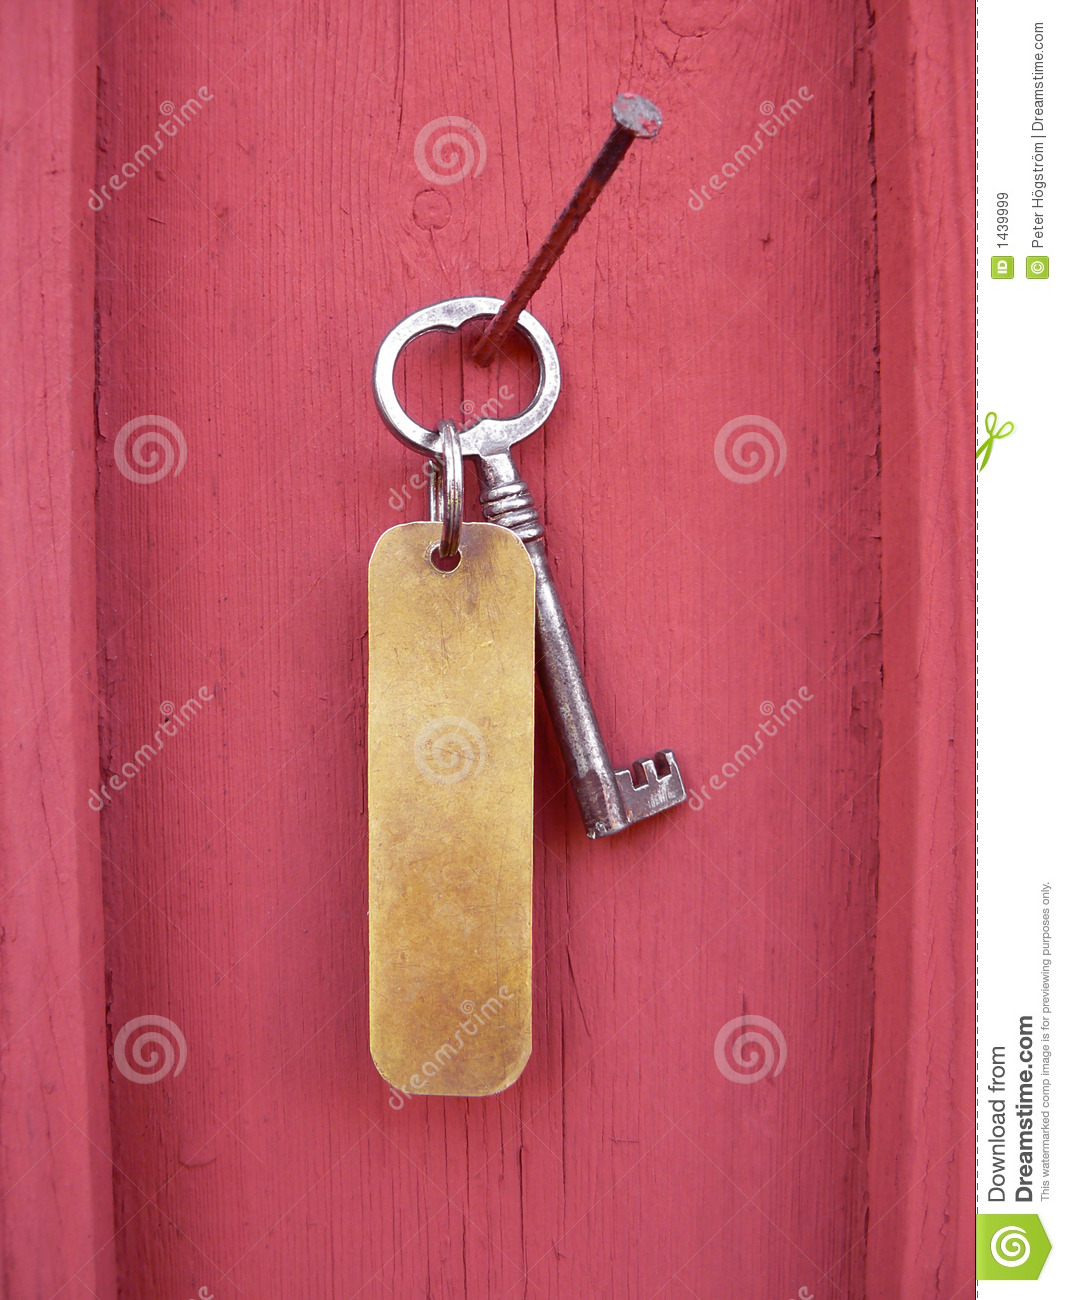 Key with tag